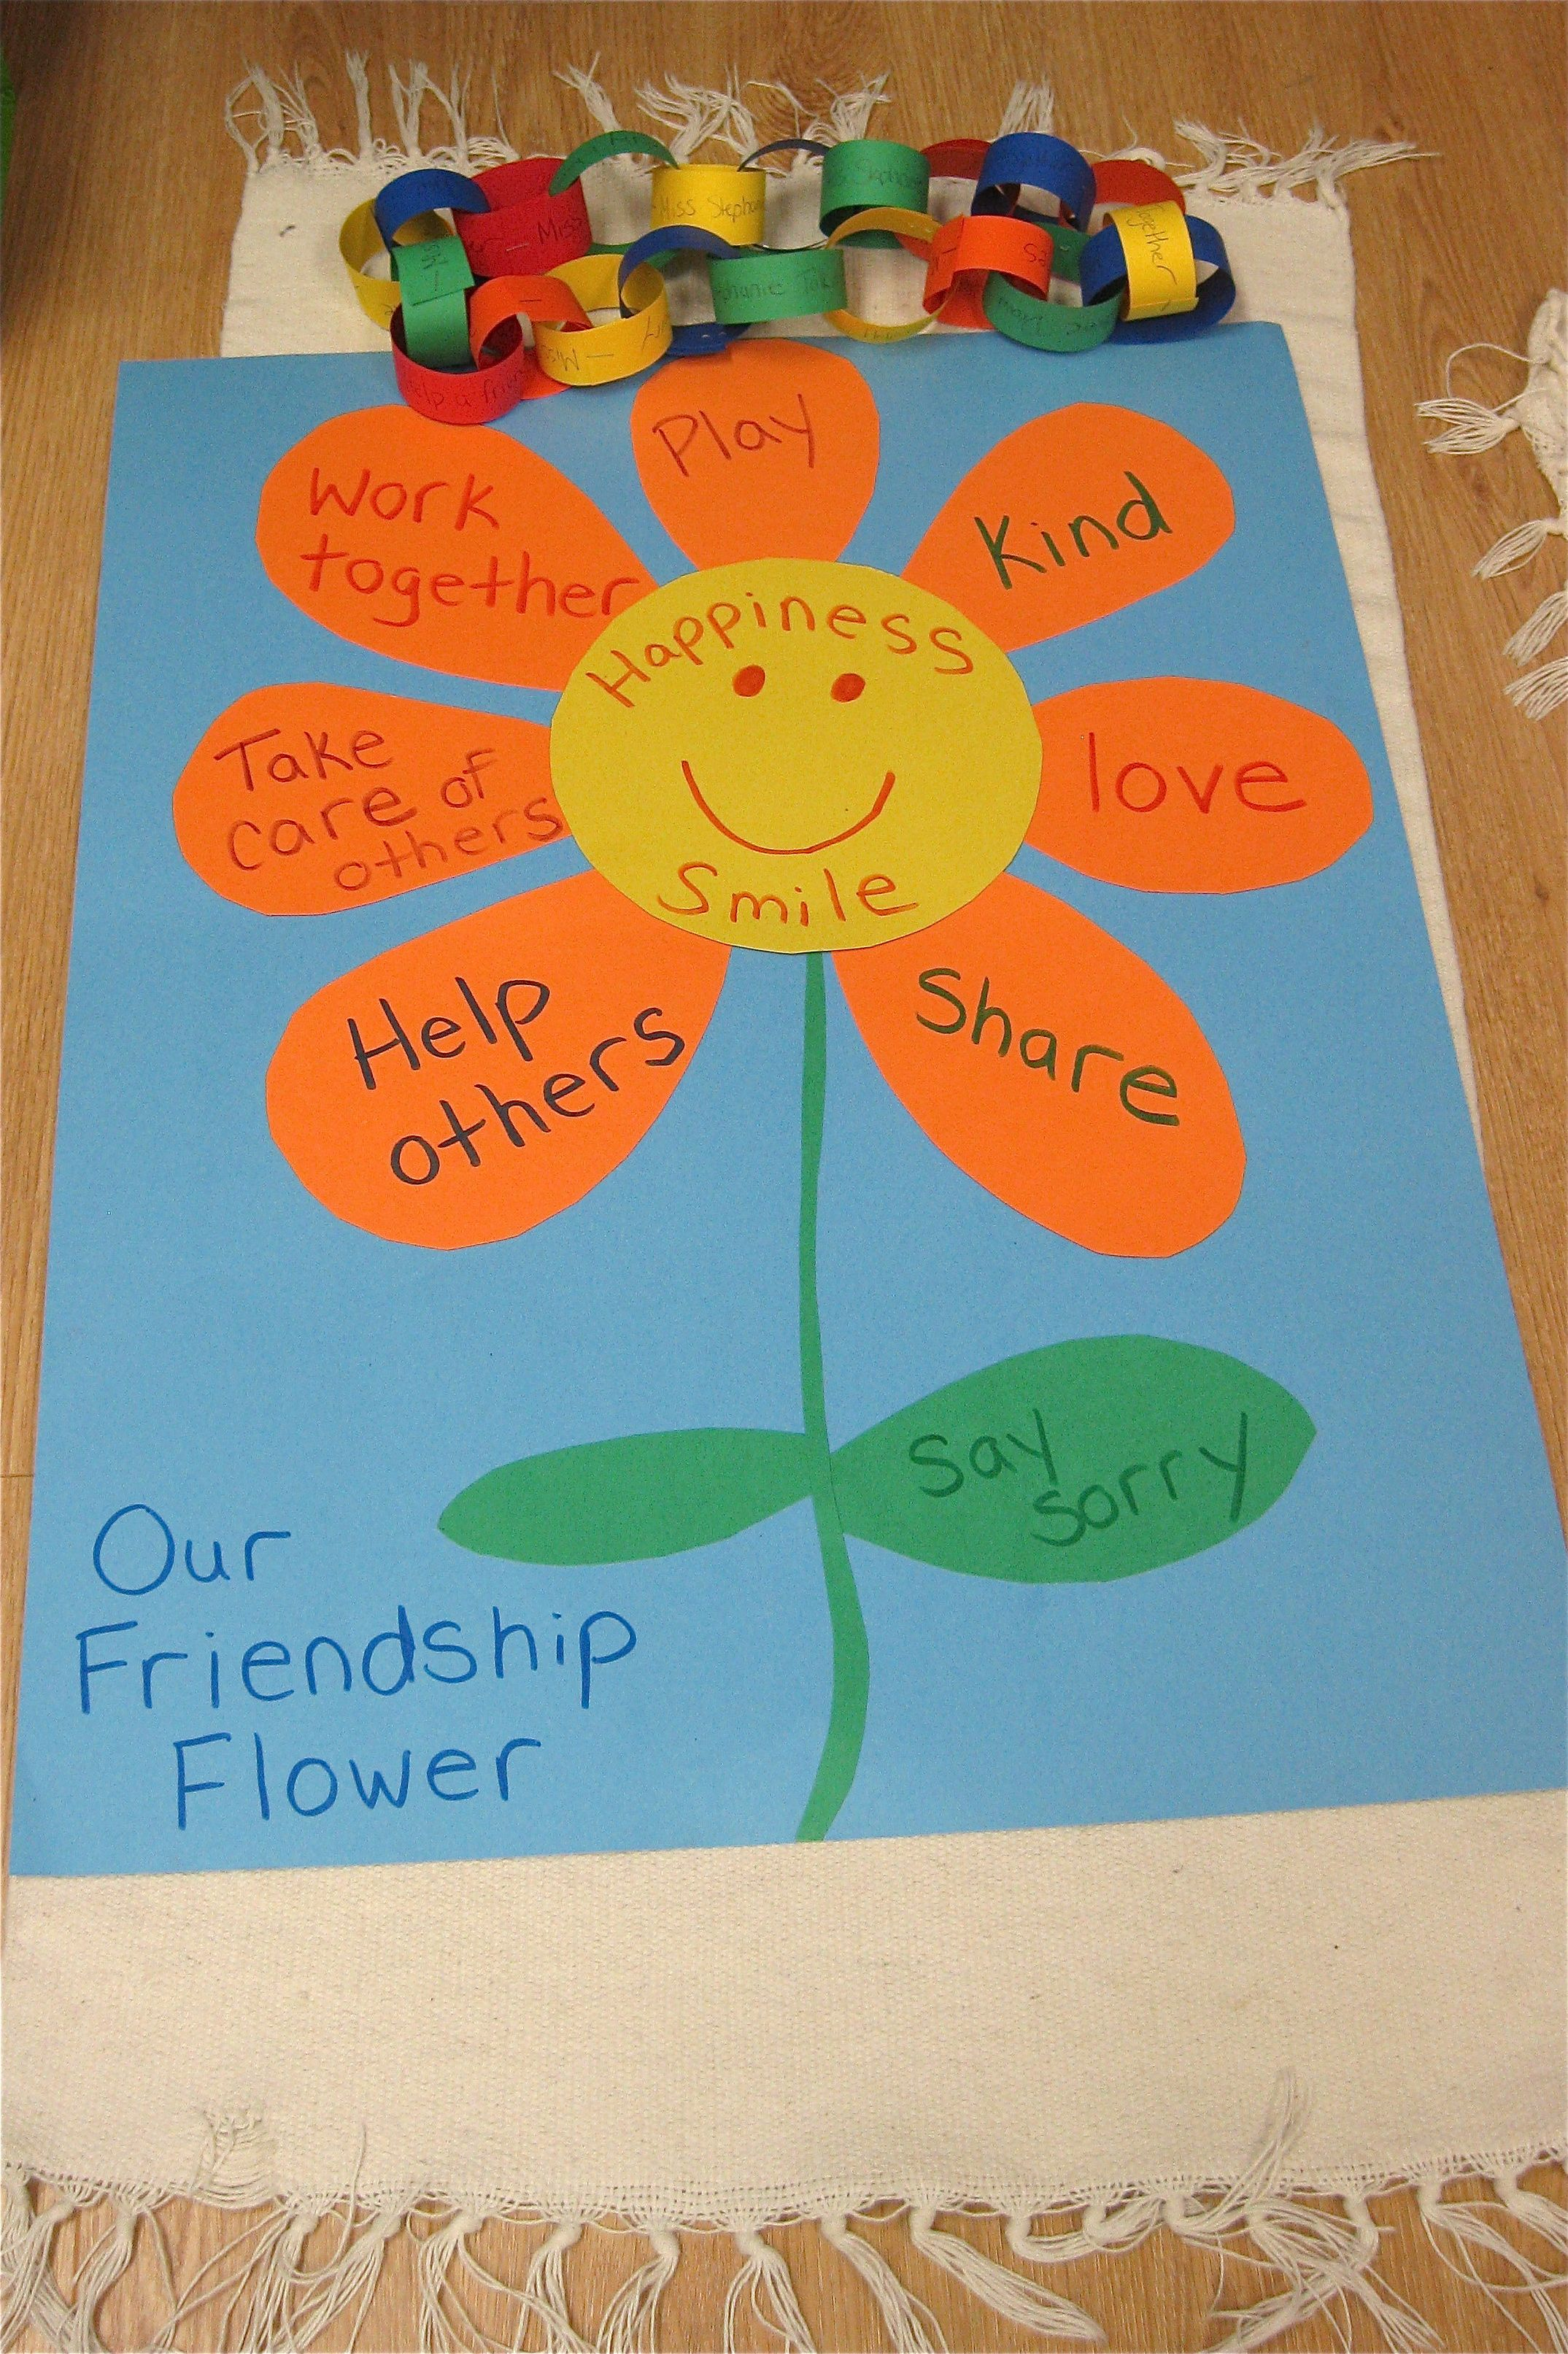 Plants arts and crafts - Find This Pin And More On Pre K Spring Art Preschool Plant Crafts